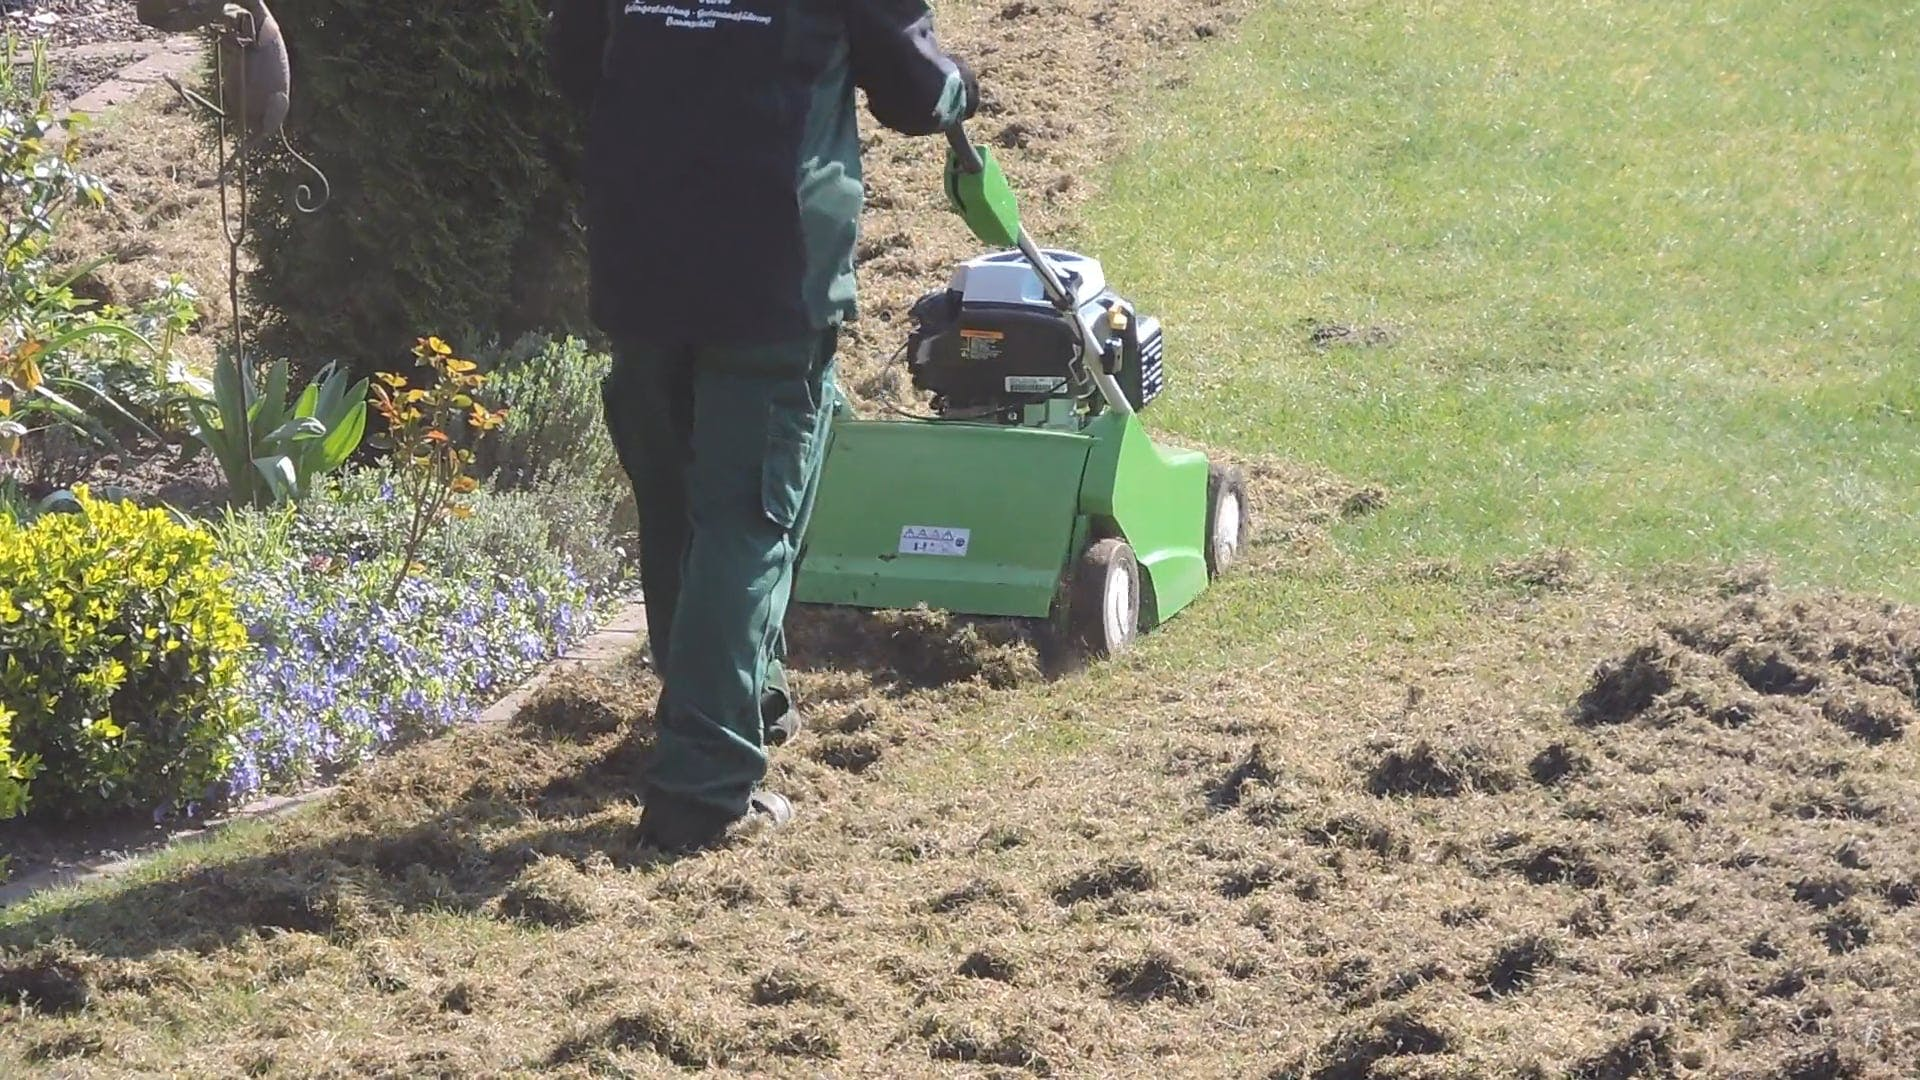 Man Working With A Lawn Mower